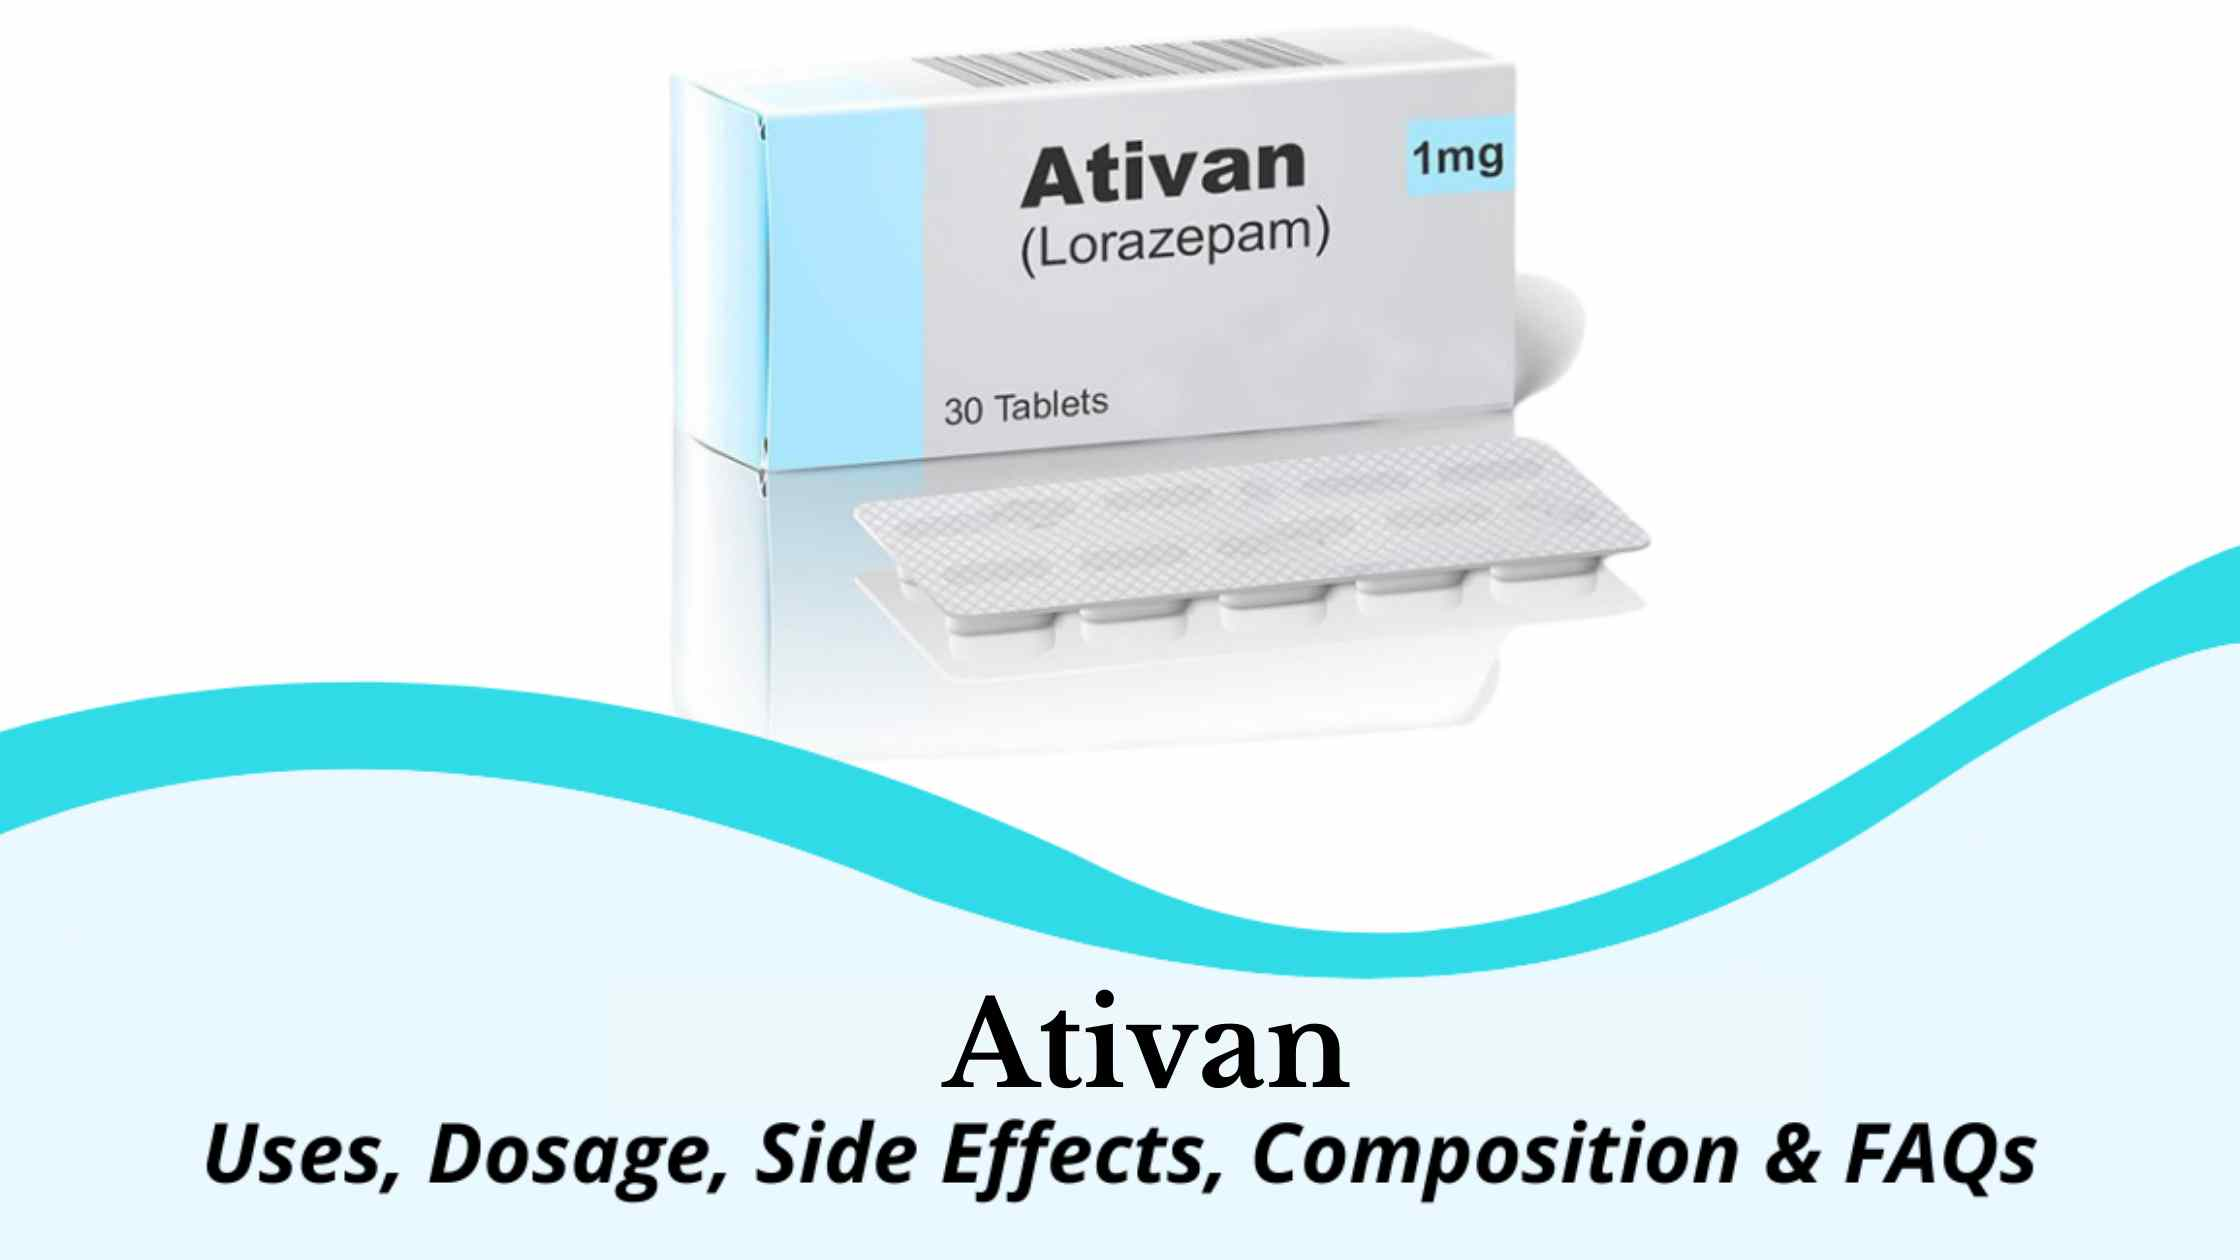 Ativan: Usages, Dosage, Side effects